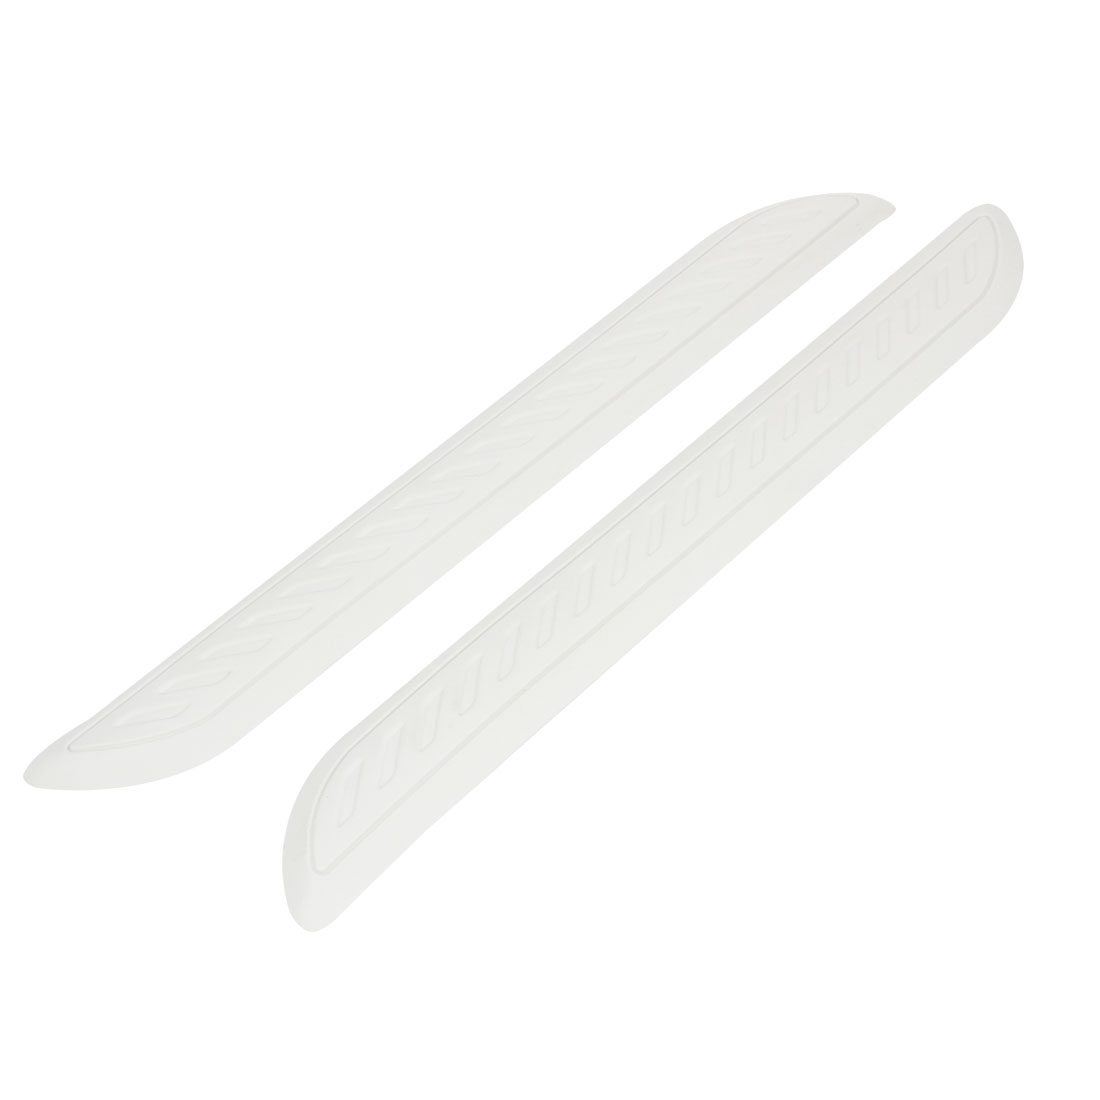 Pair Car White Plastic Front Rear Bumper Guard Protector 41cm Length